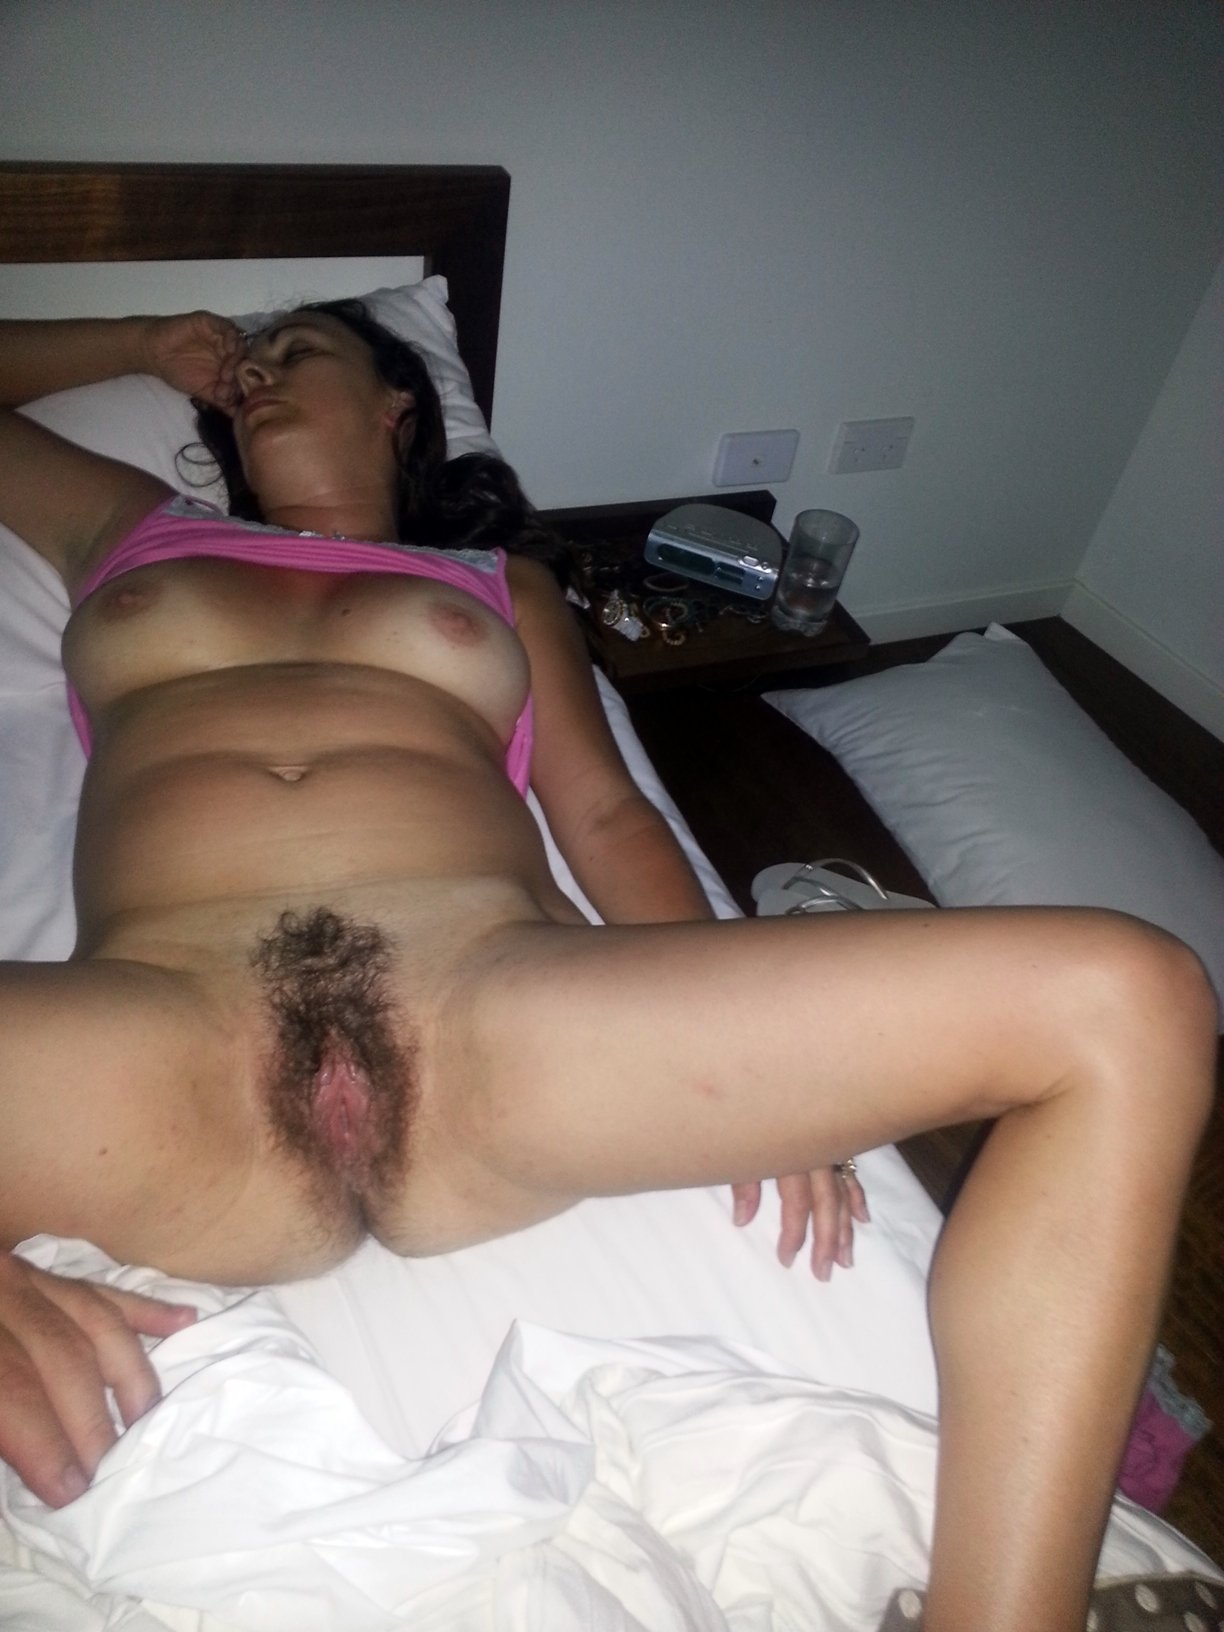 Fucking passed out girl